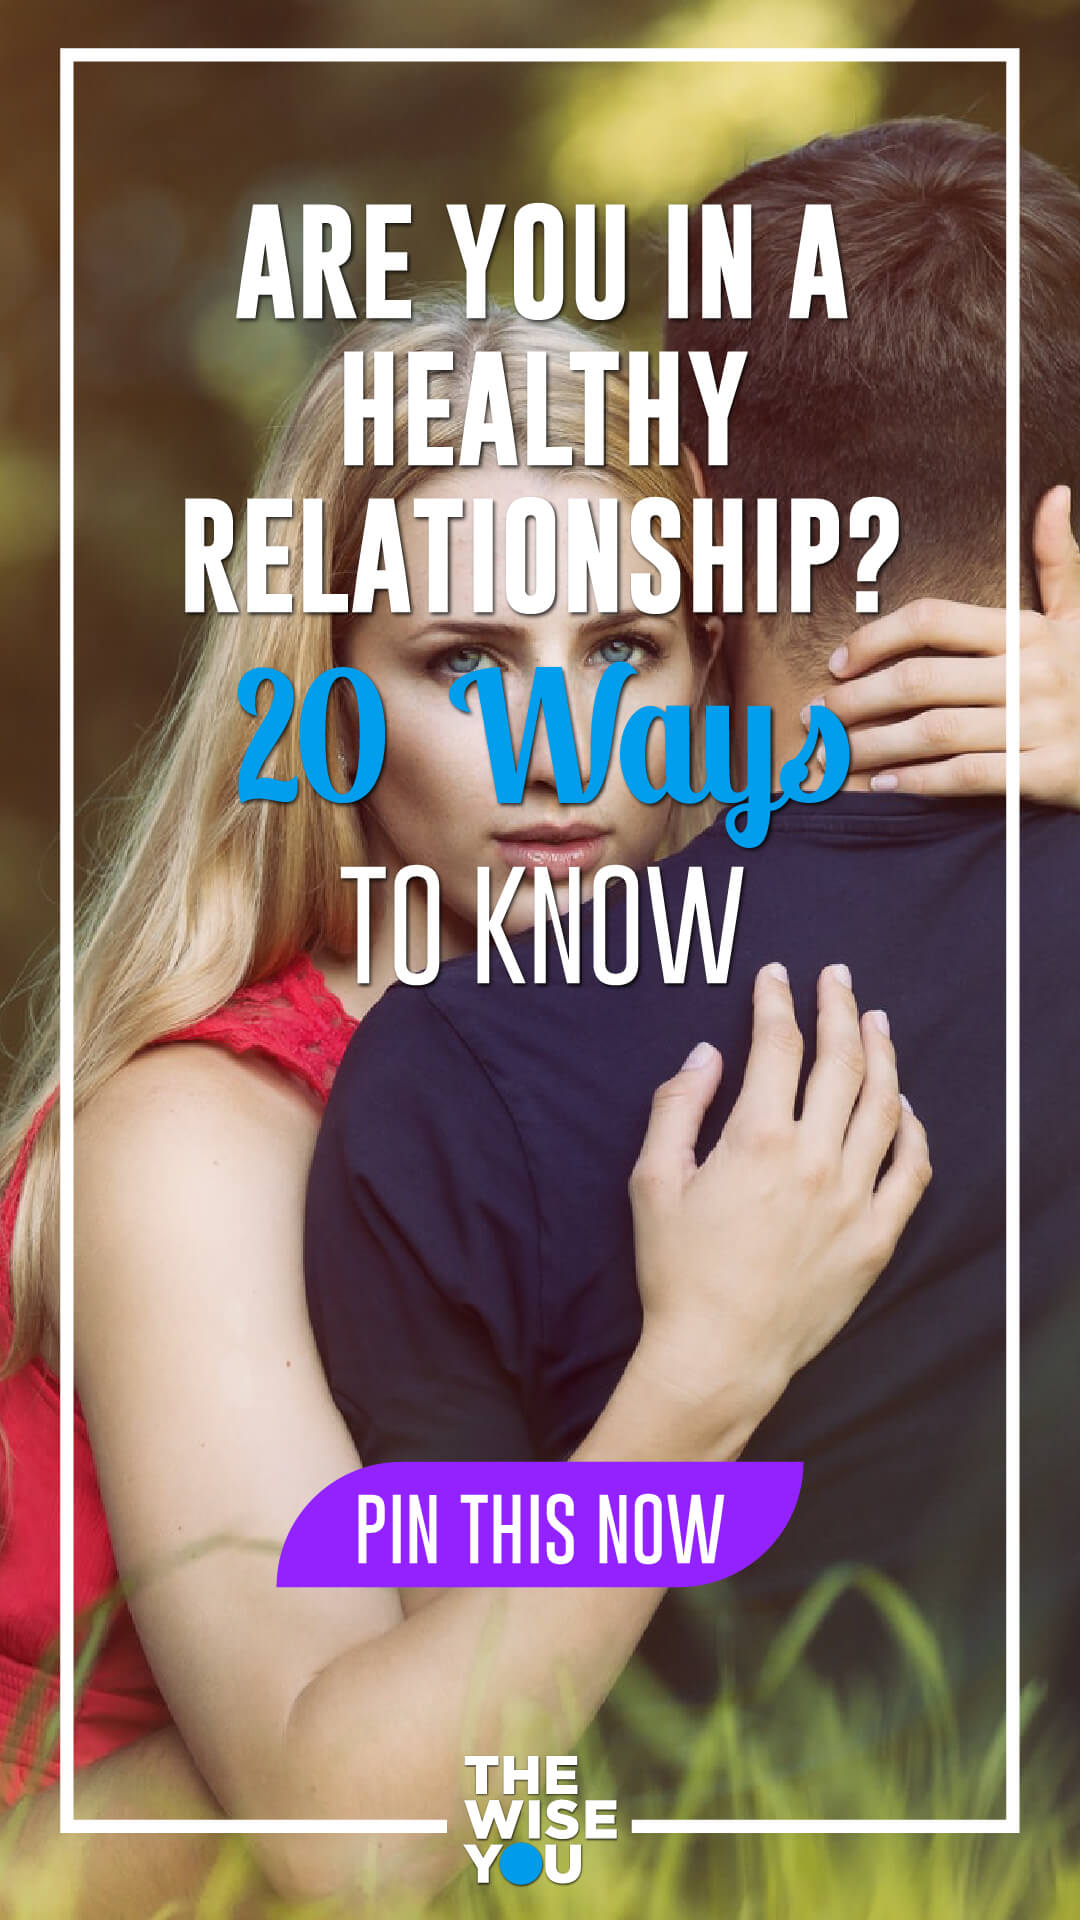 Healthy Relationship?